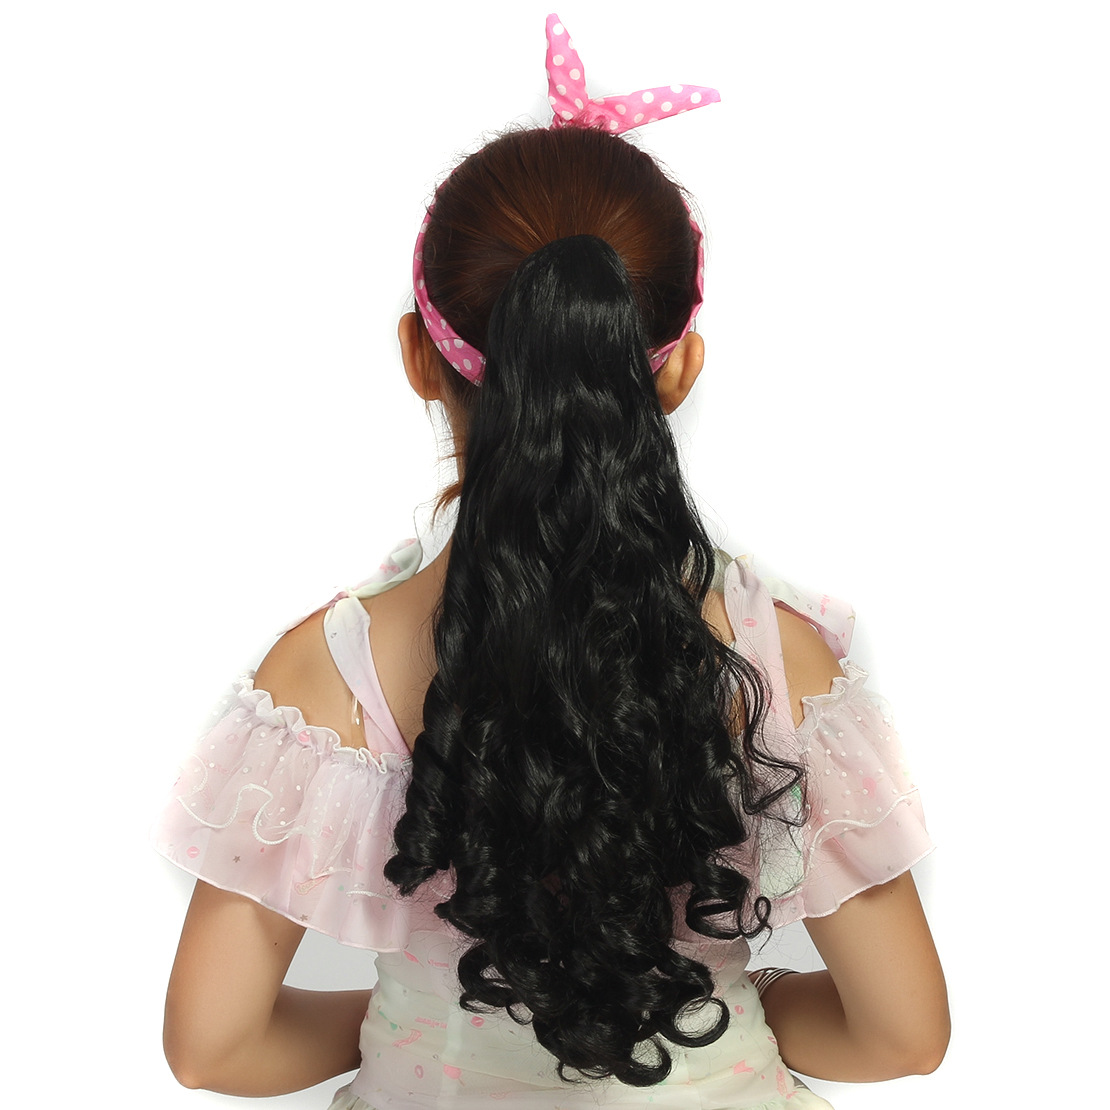 New brand and high quality Ponytail Hairpieces Fashion Wave of Cauda Equina Non Mainstream Wig free shipping<br><br>Aliexpress